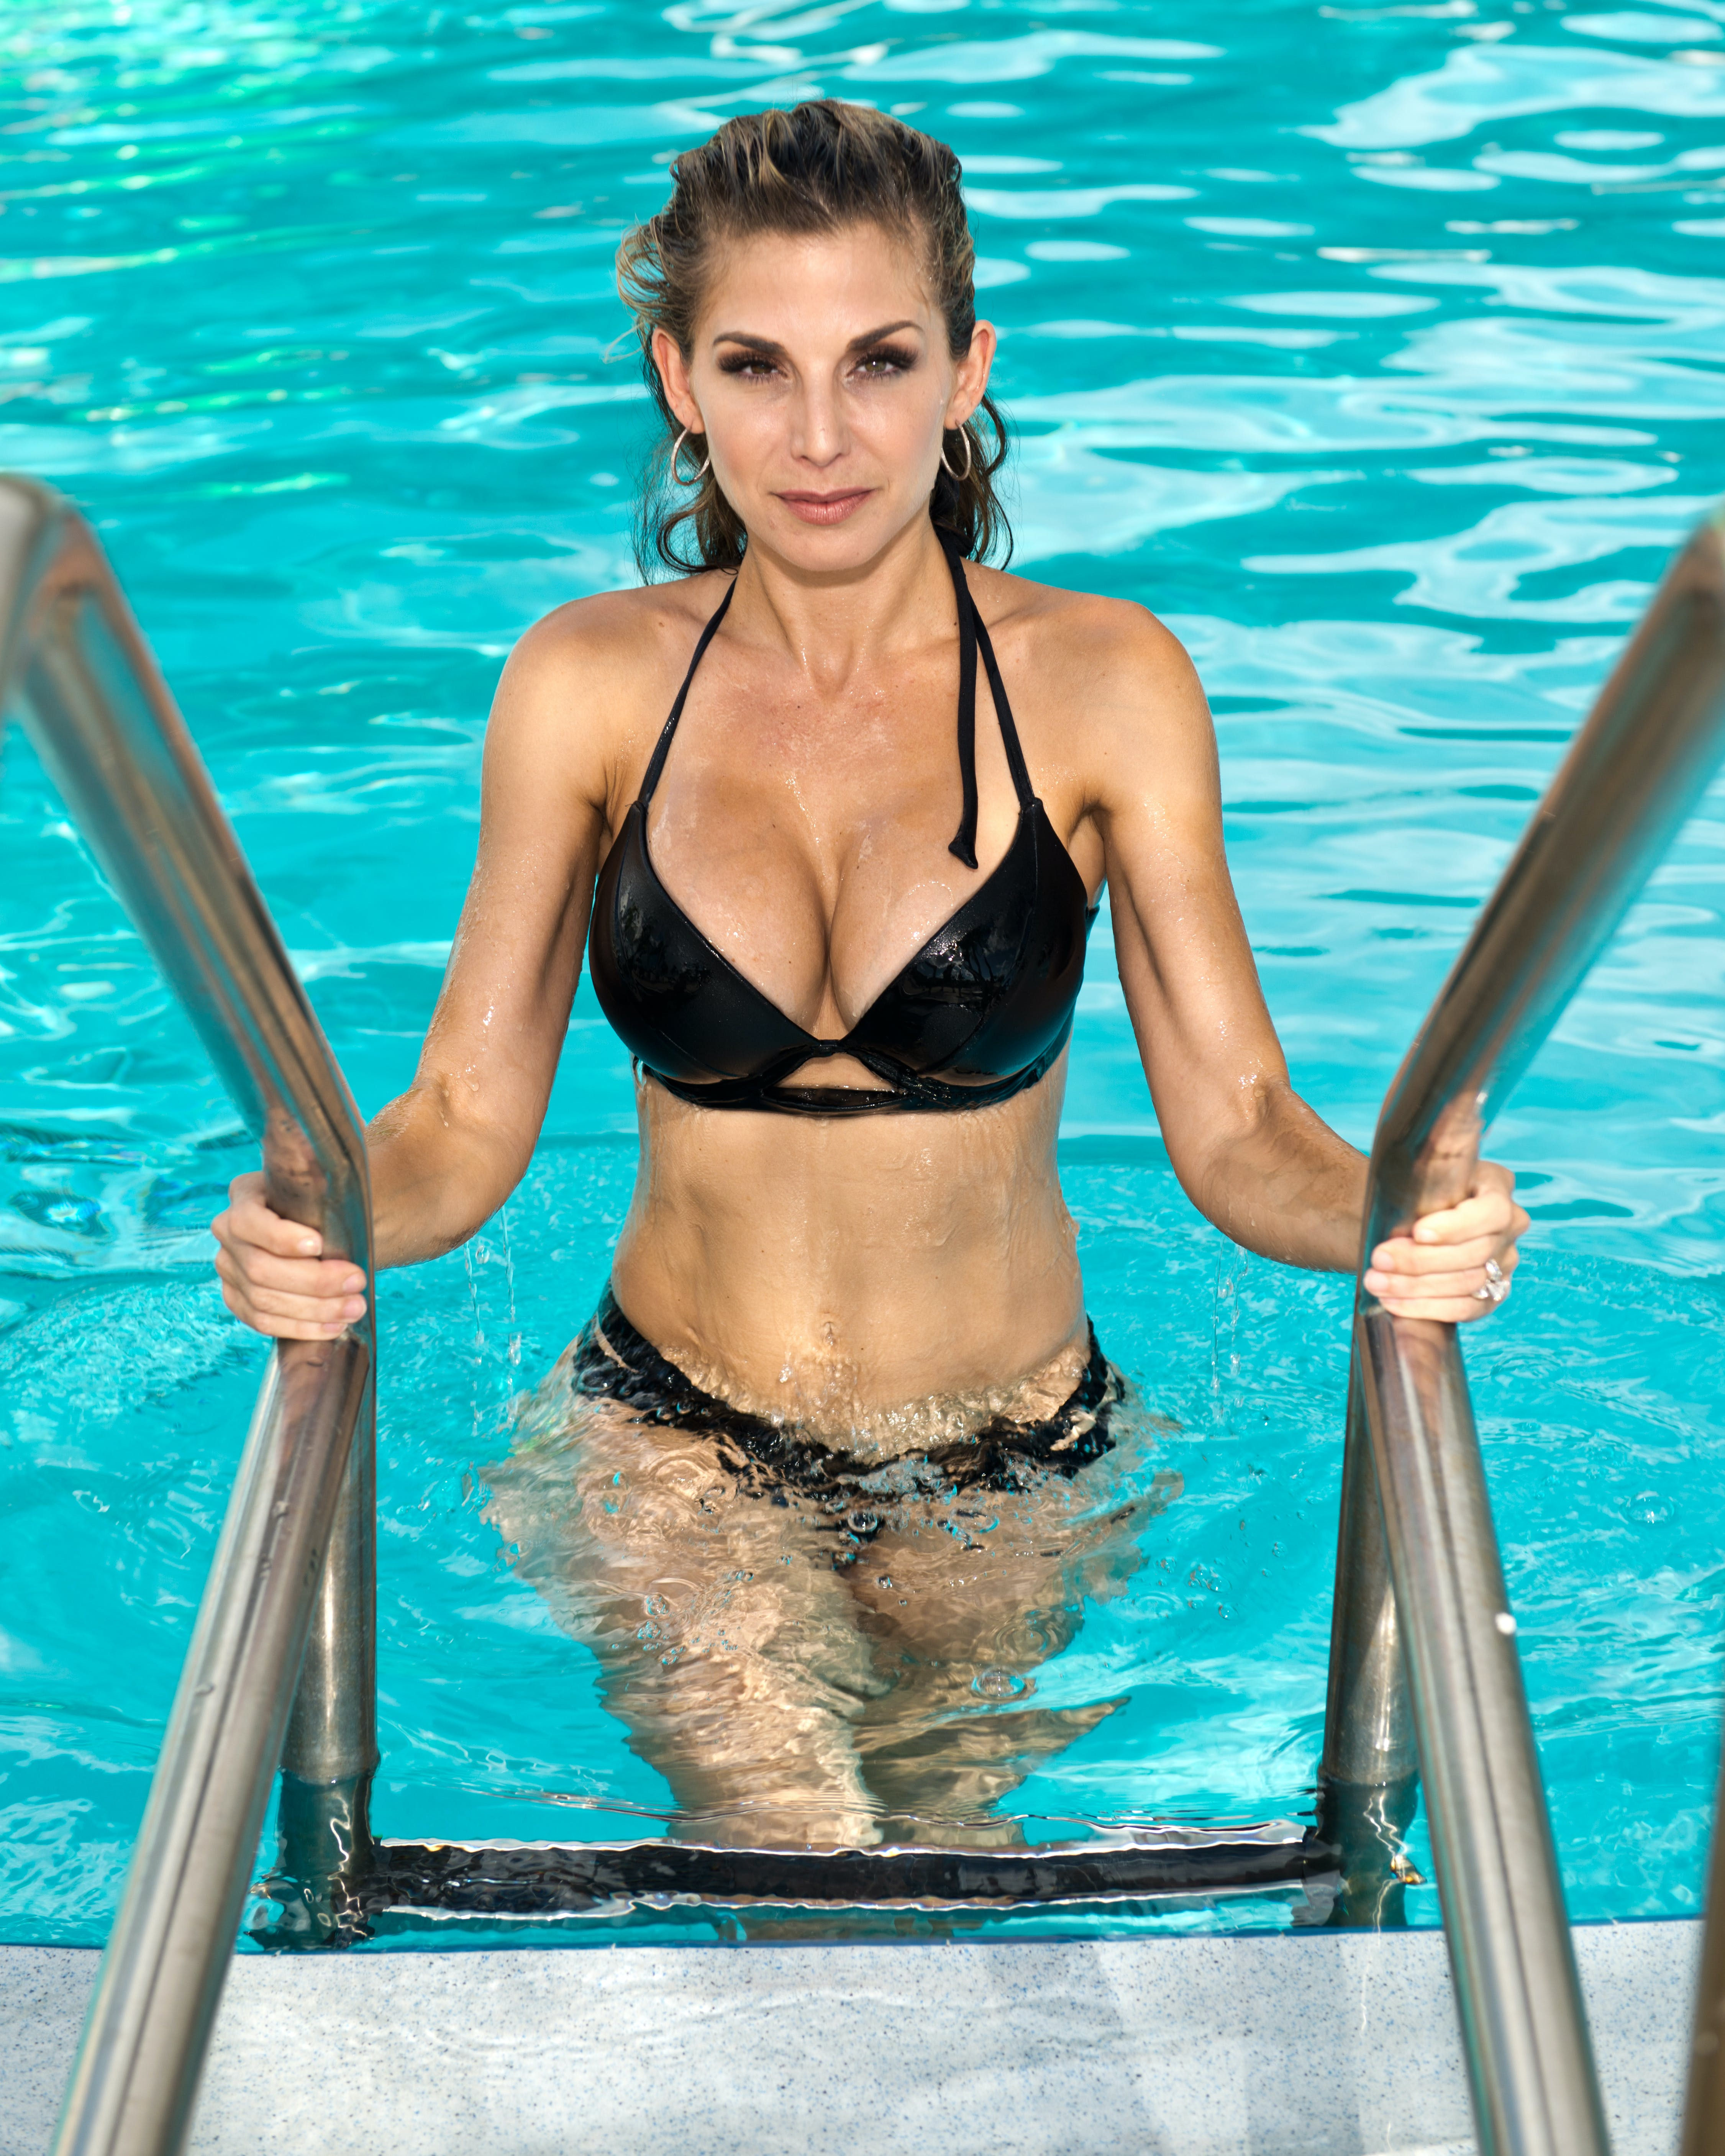 Free stock photo of bathing suit, exit pool, ladder, Physical trainer